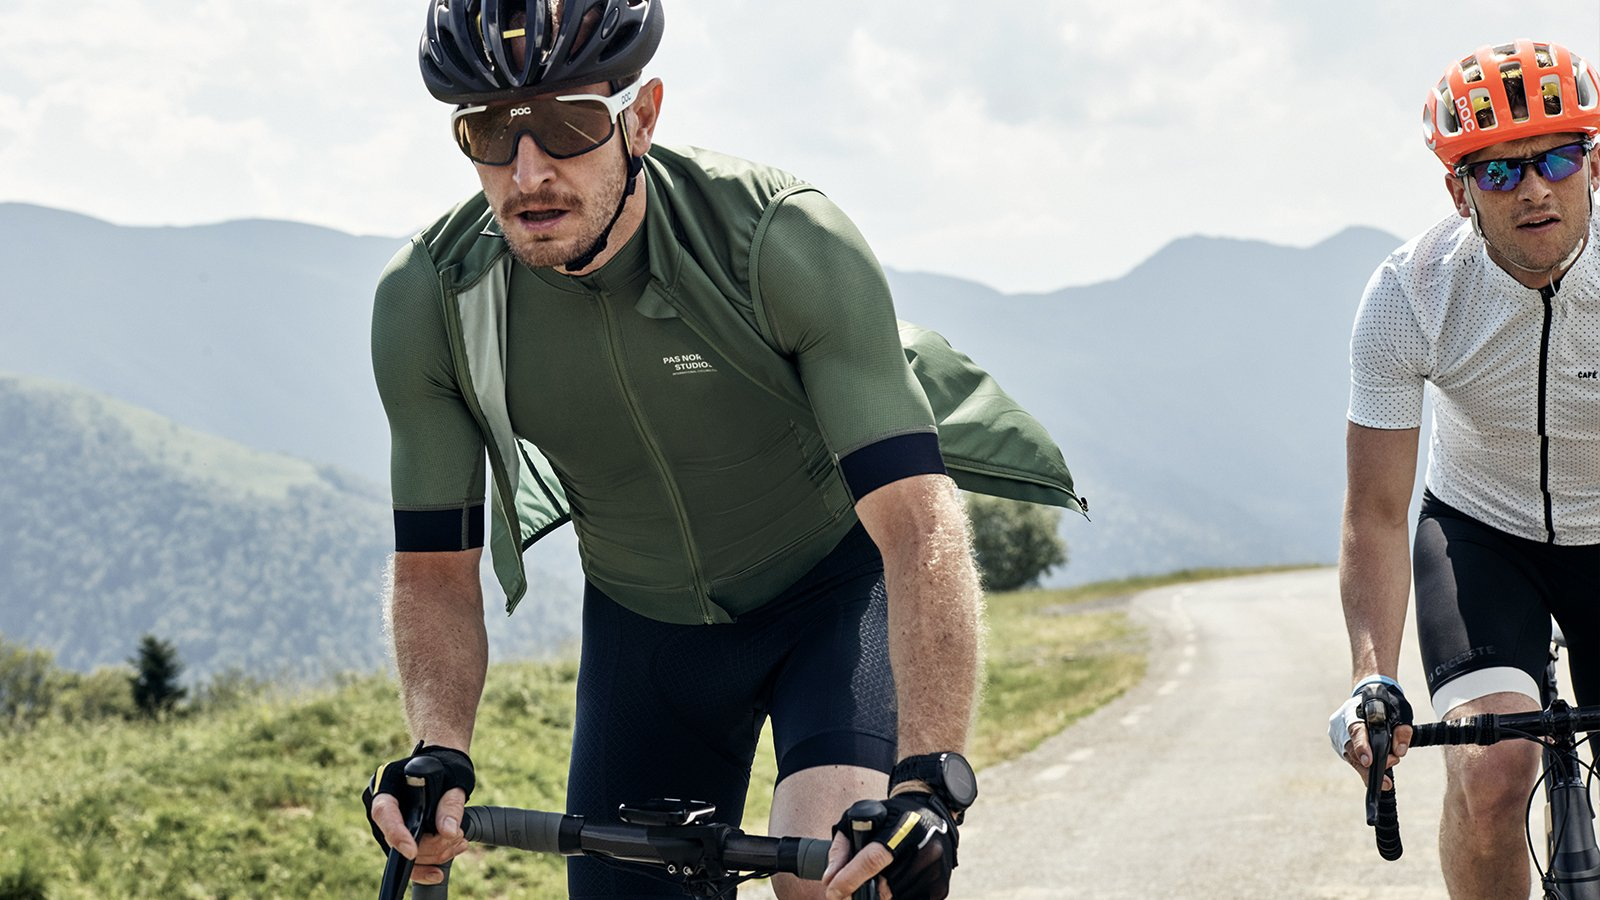 Iffley road cafe du cycliste pas normal studios mr porter capsule collection lappoms lifestyle blog jersey cycling